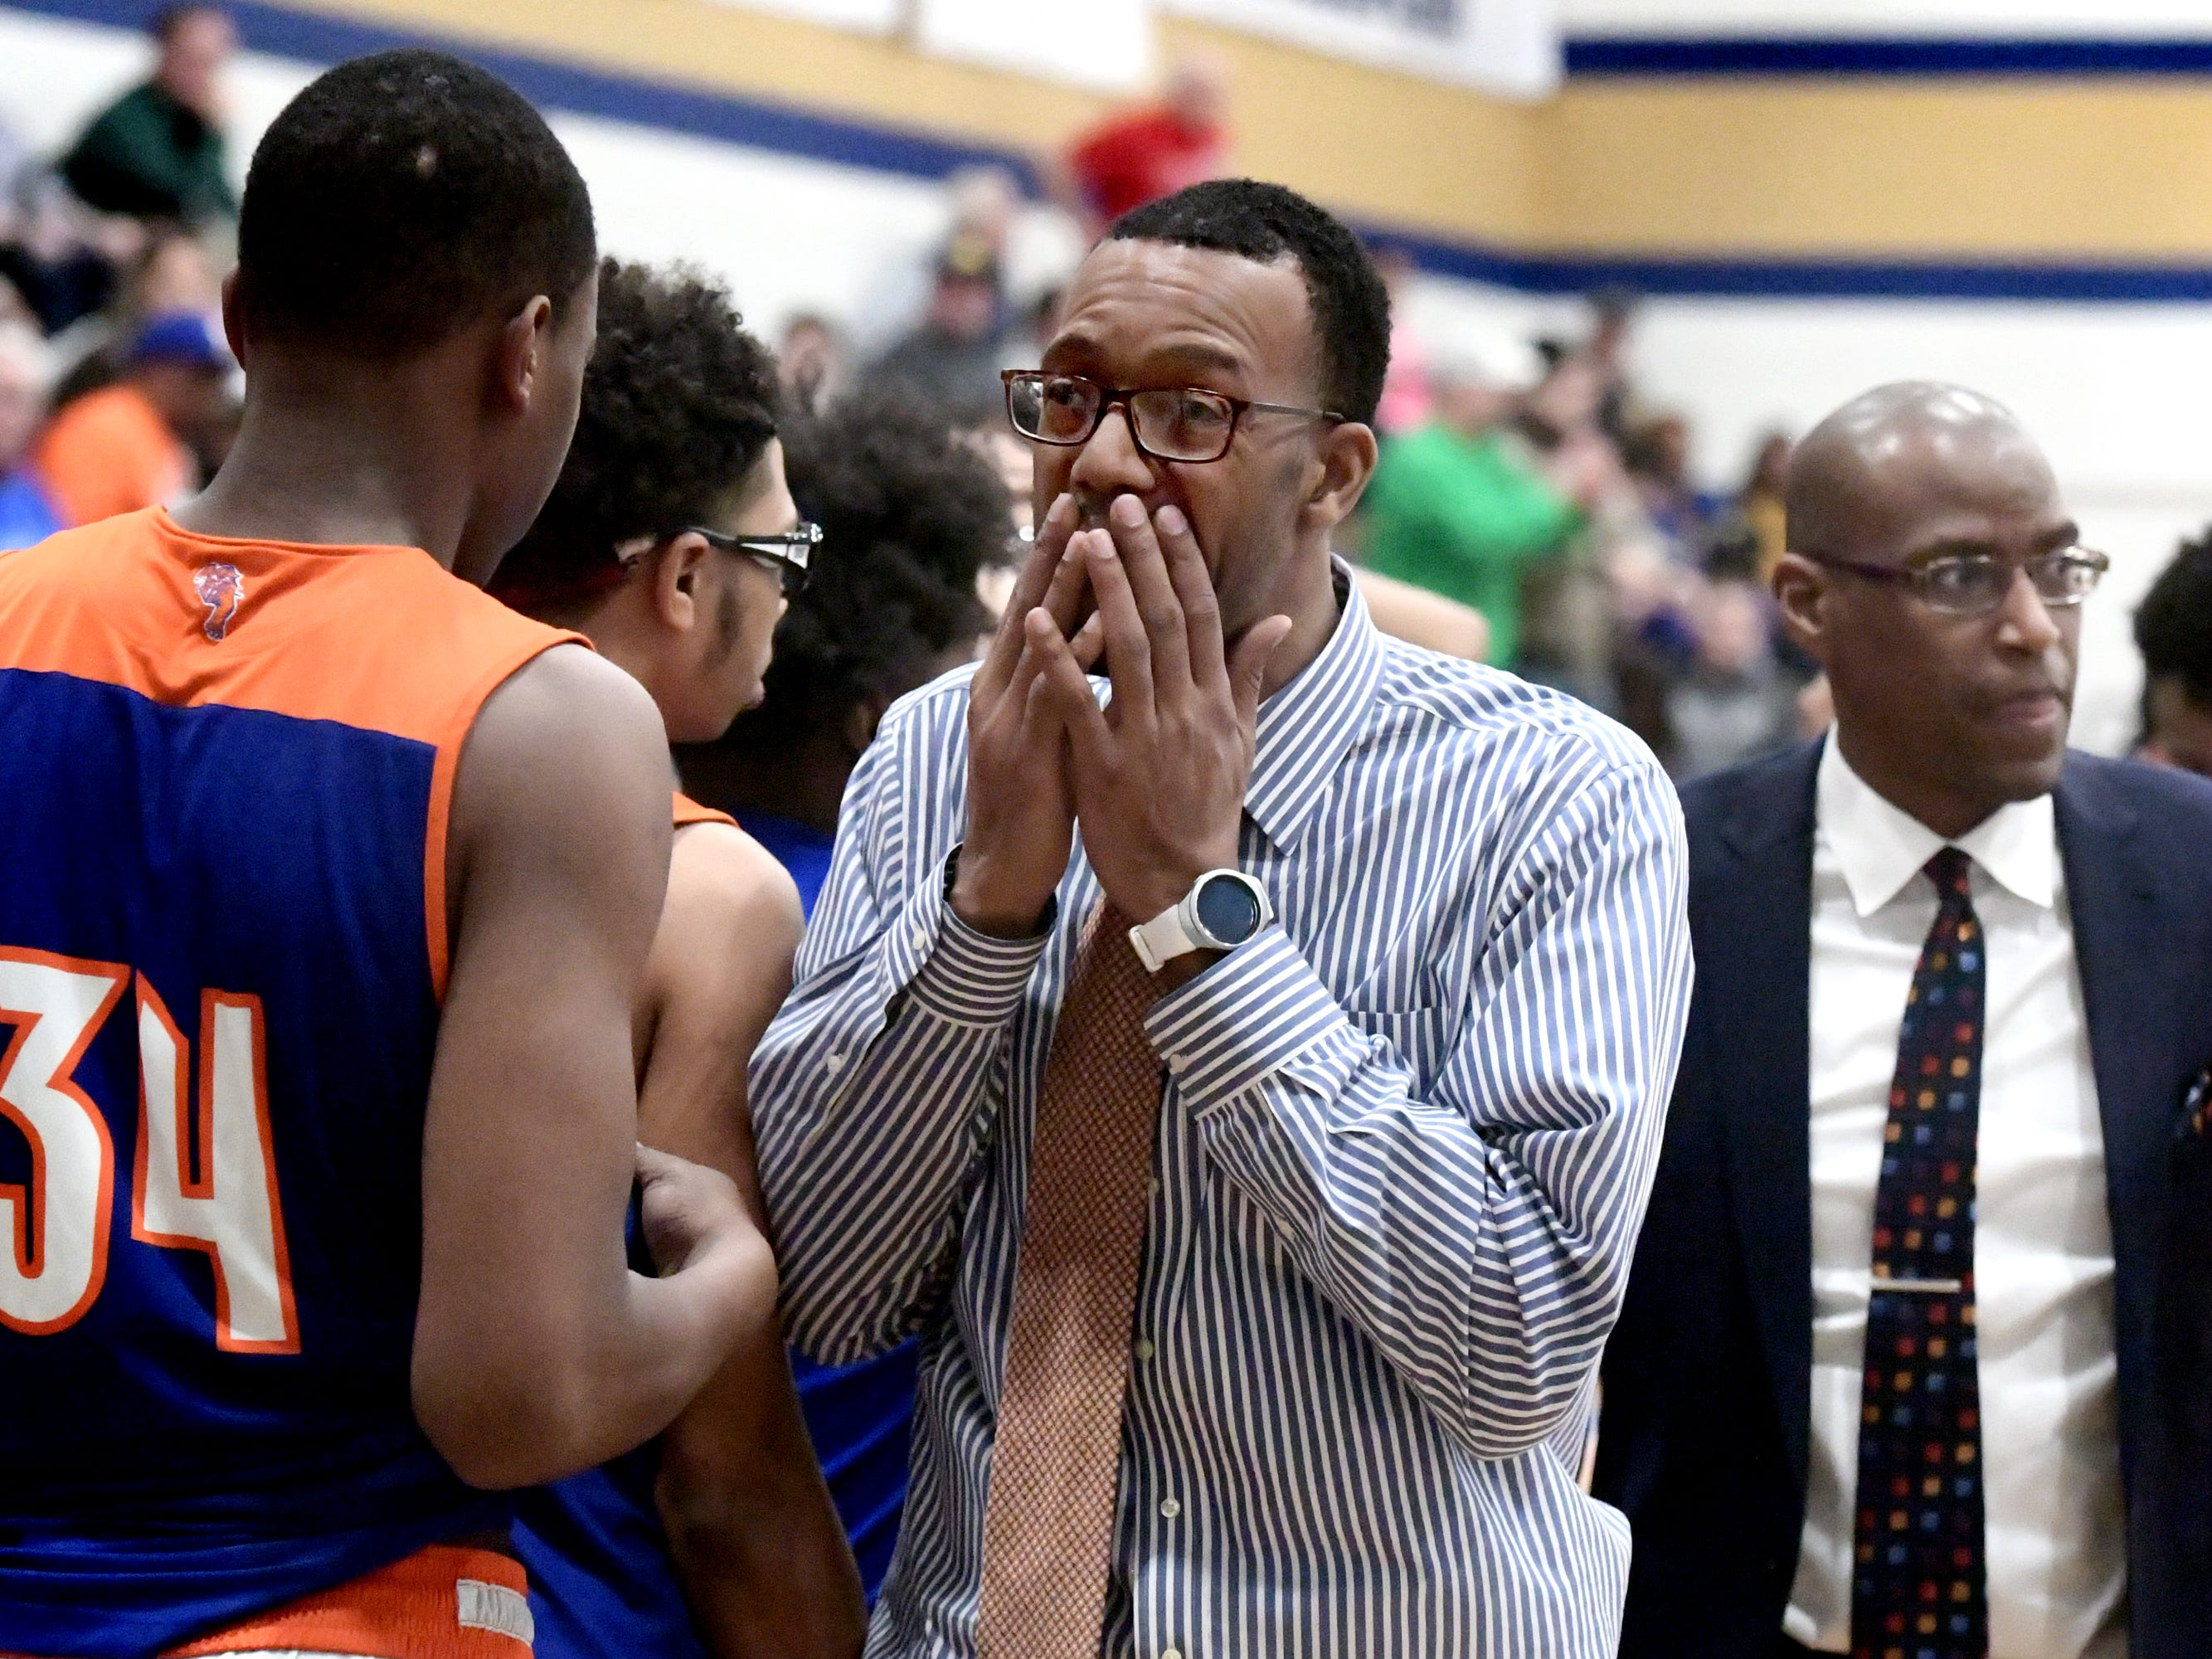 York High coaches react after their teams' loss in a PIAA Class 5-A second-round state boys' basketball playoff game against Mars at Holidaysburg High School in Blair County Tuesday, March 12, 2019. York lost 60-59. Bill Kalina photo